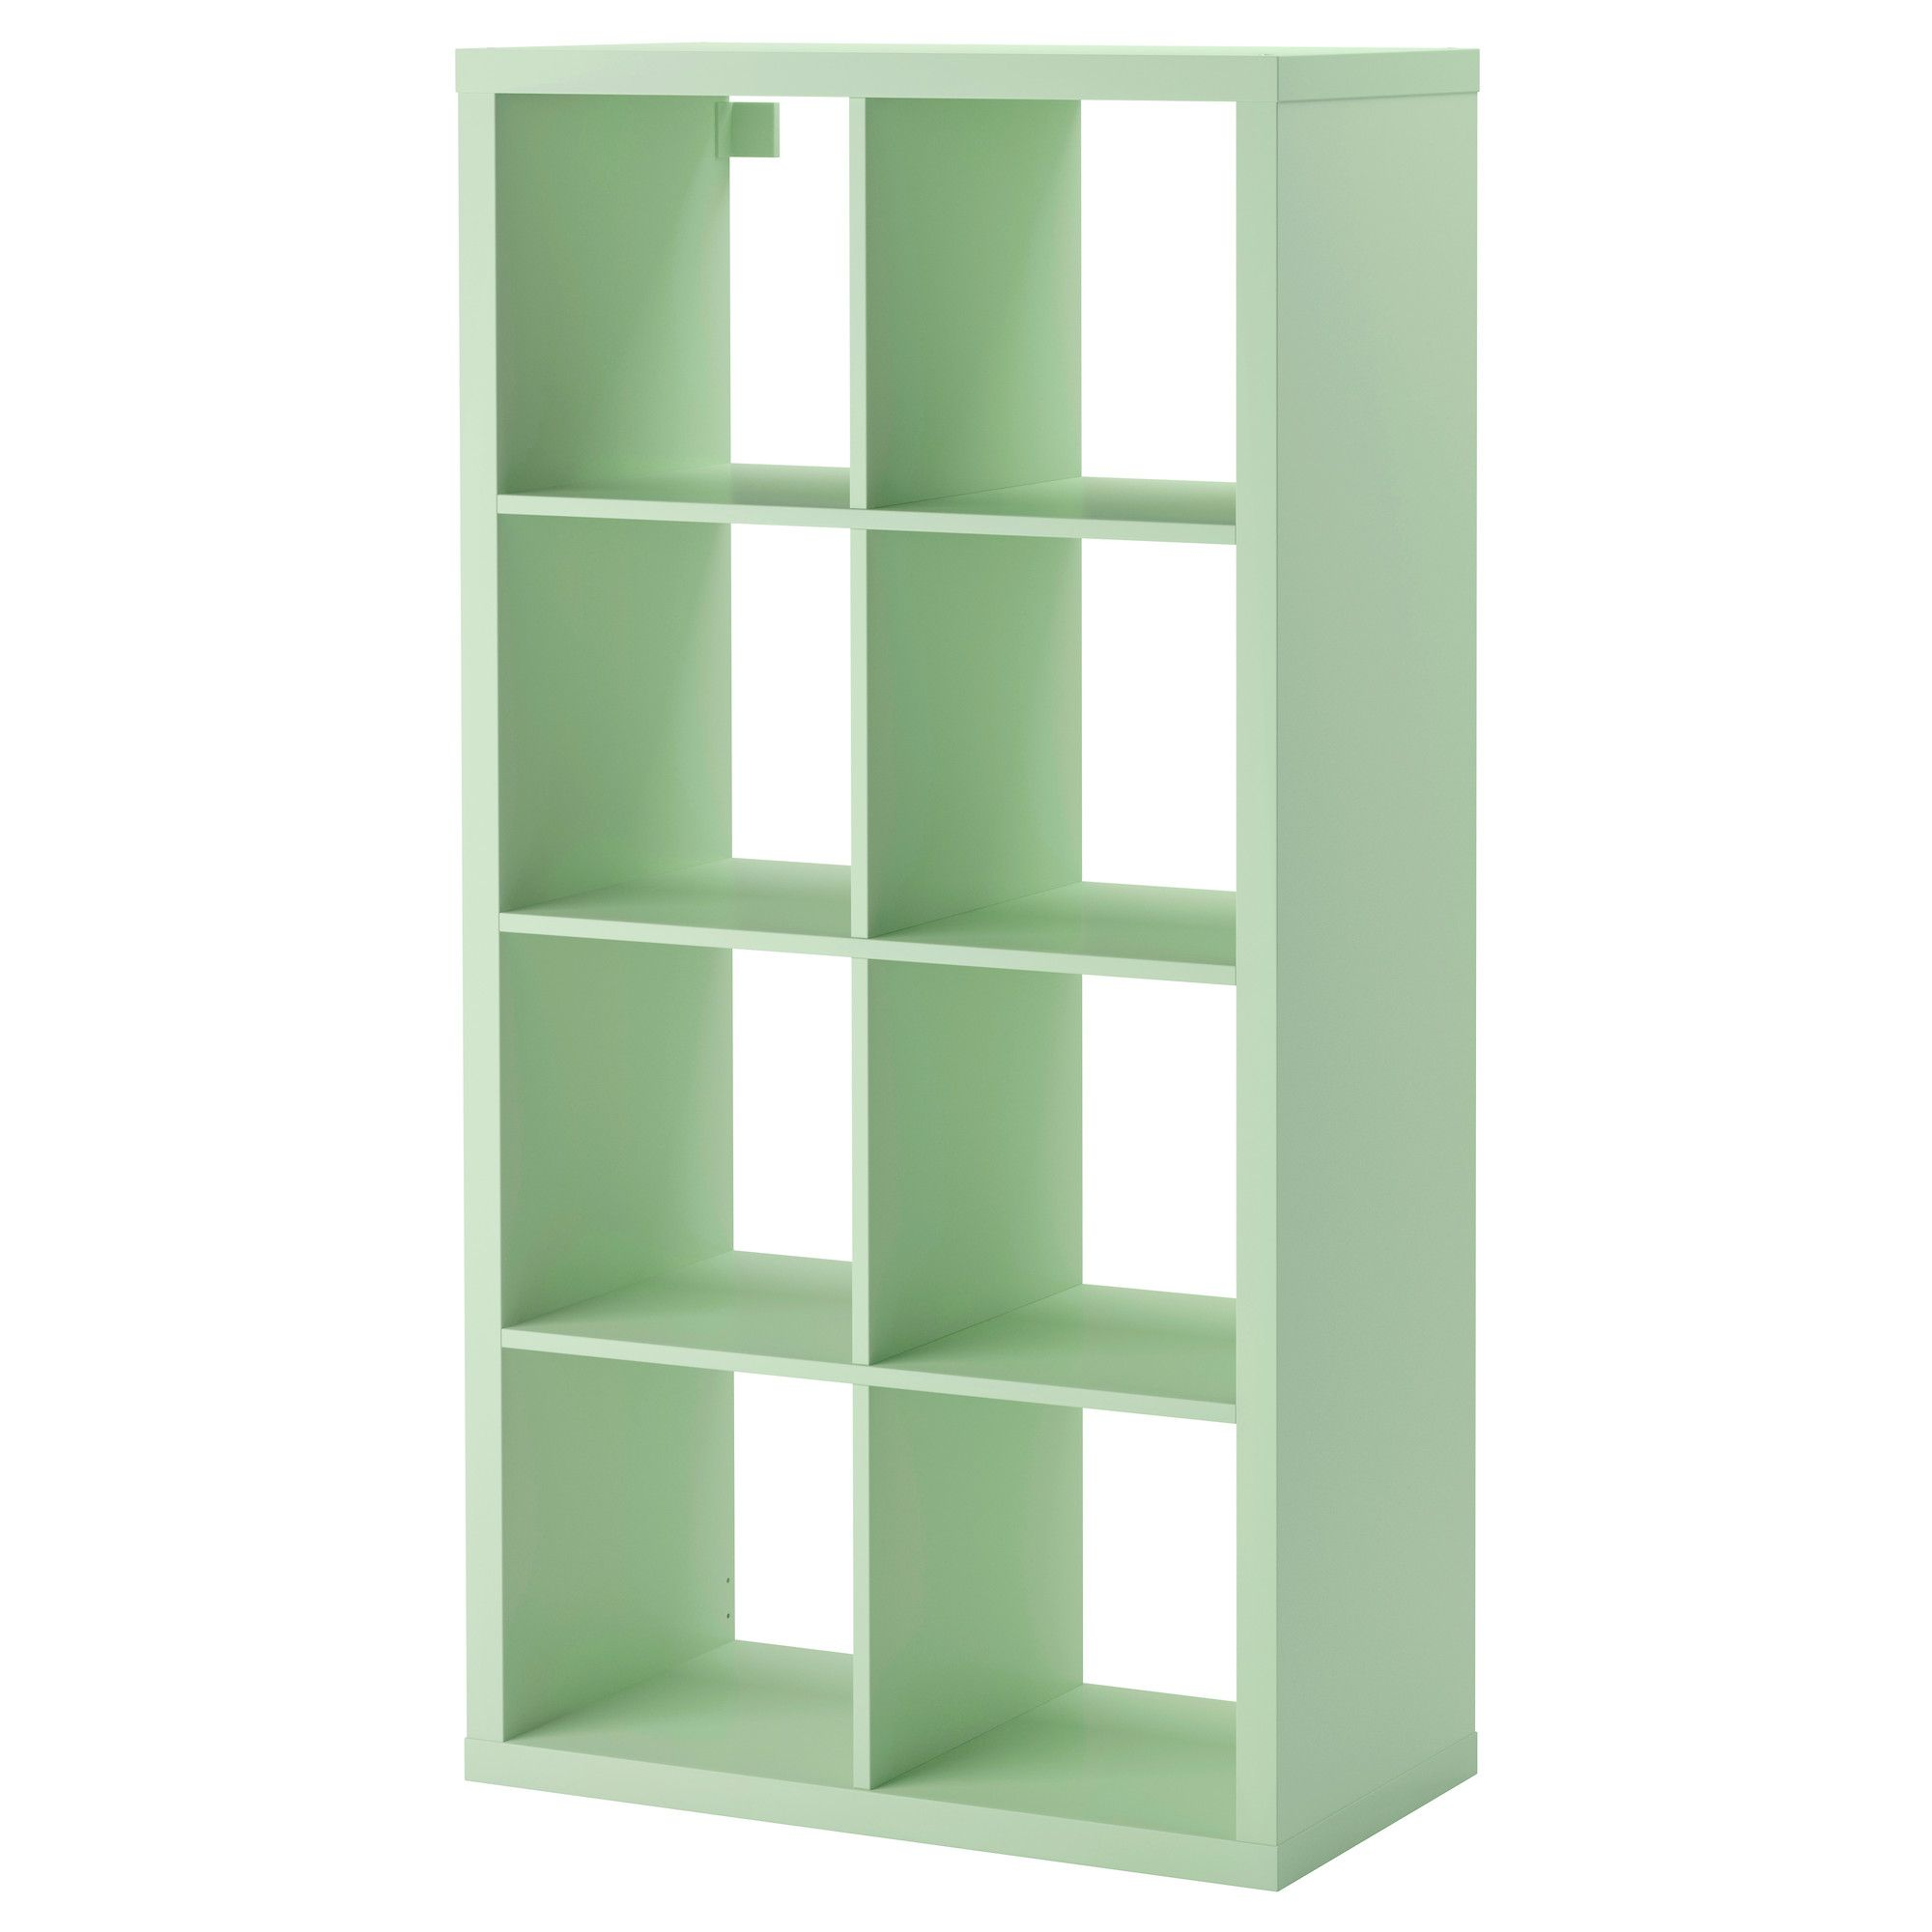 kallax shelving unit light green 64 99 dreamy mint ikea oh my